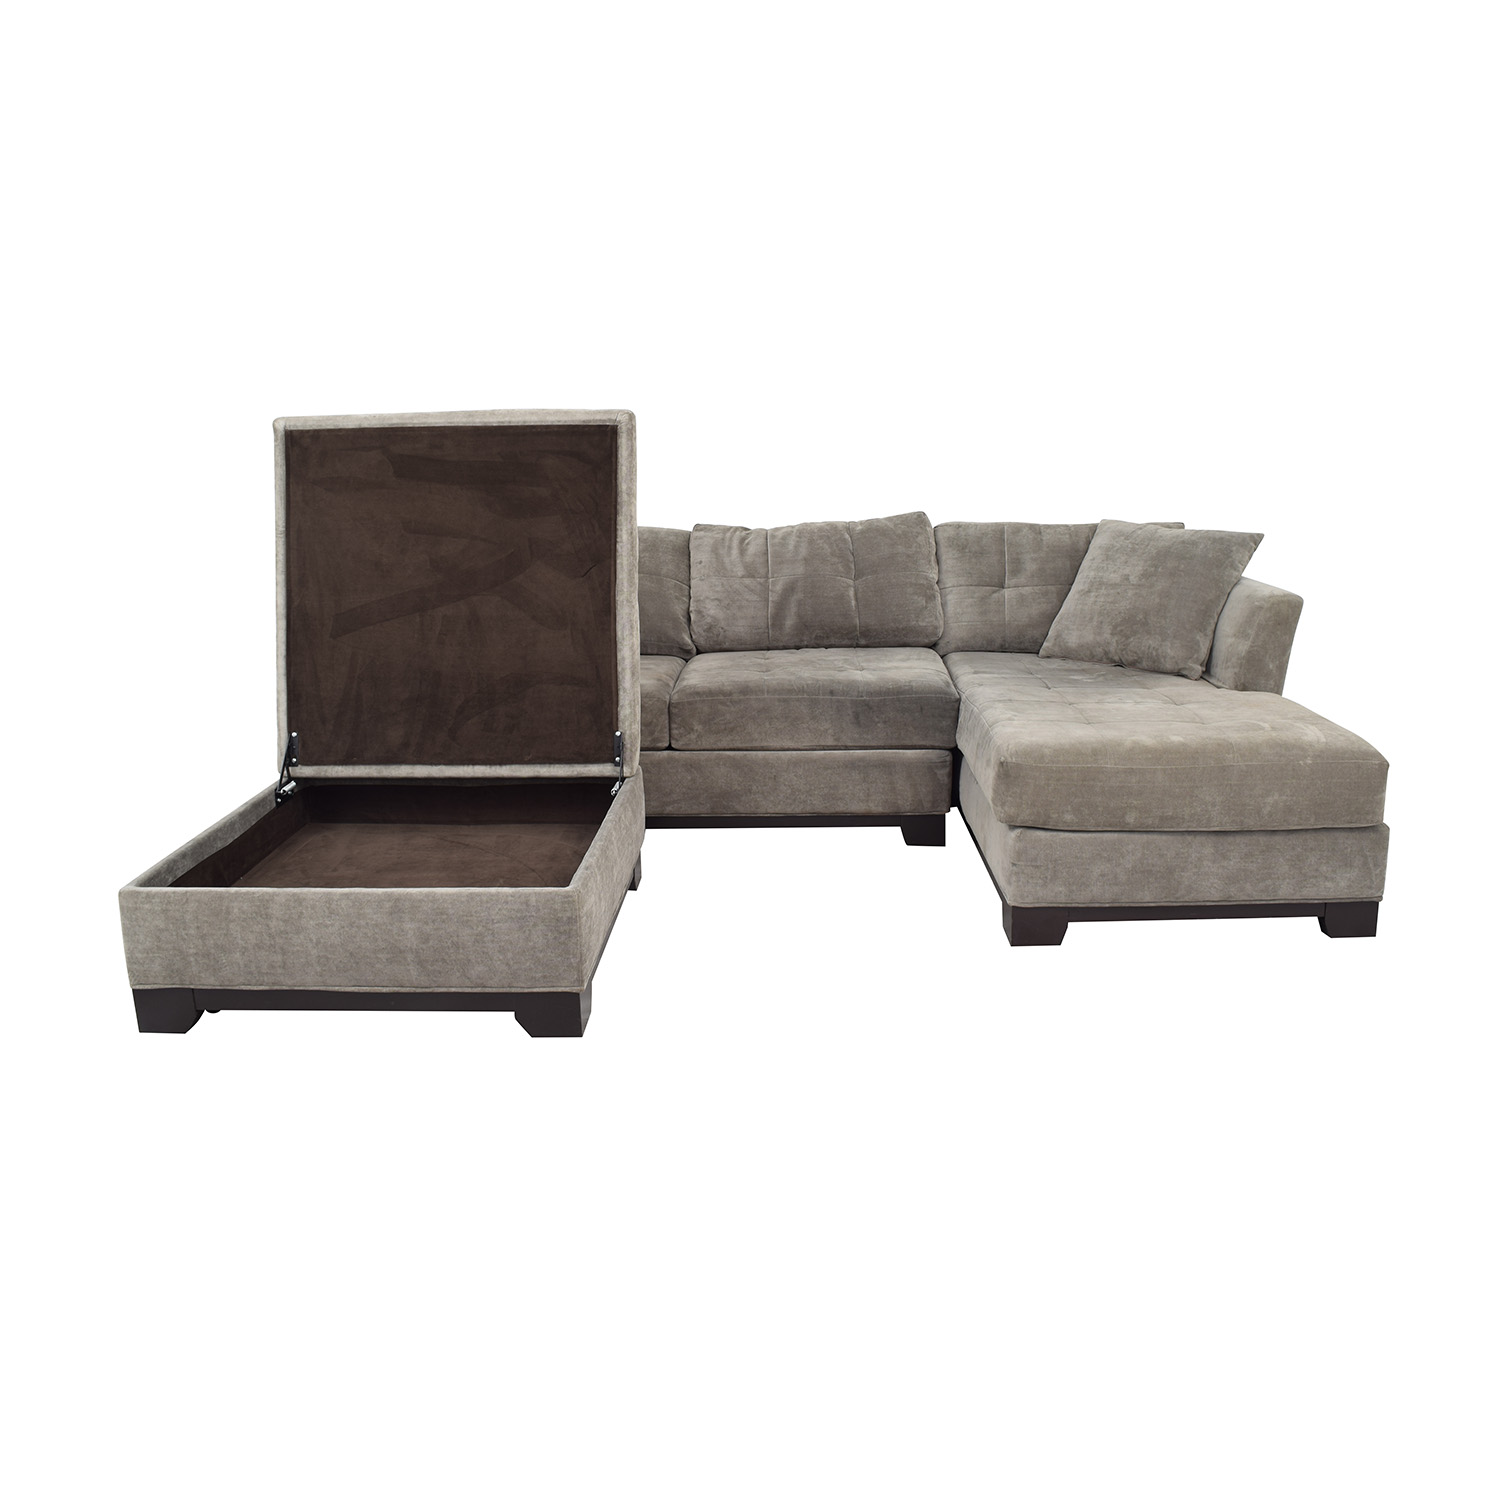 buy Macy's Macy's Furniture Chaise Couch with Ottoman online